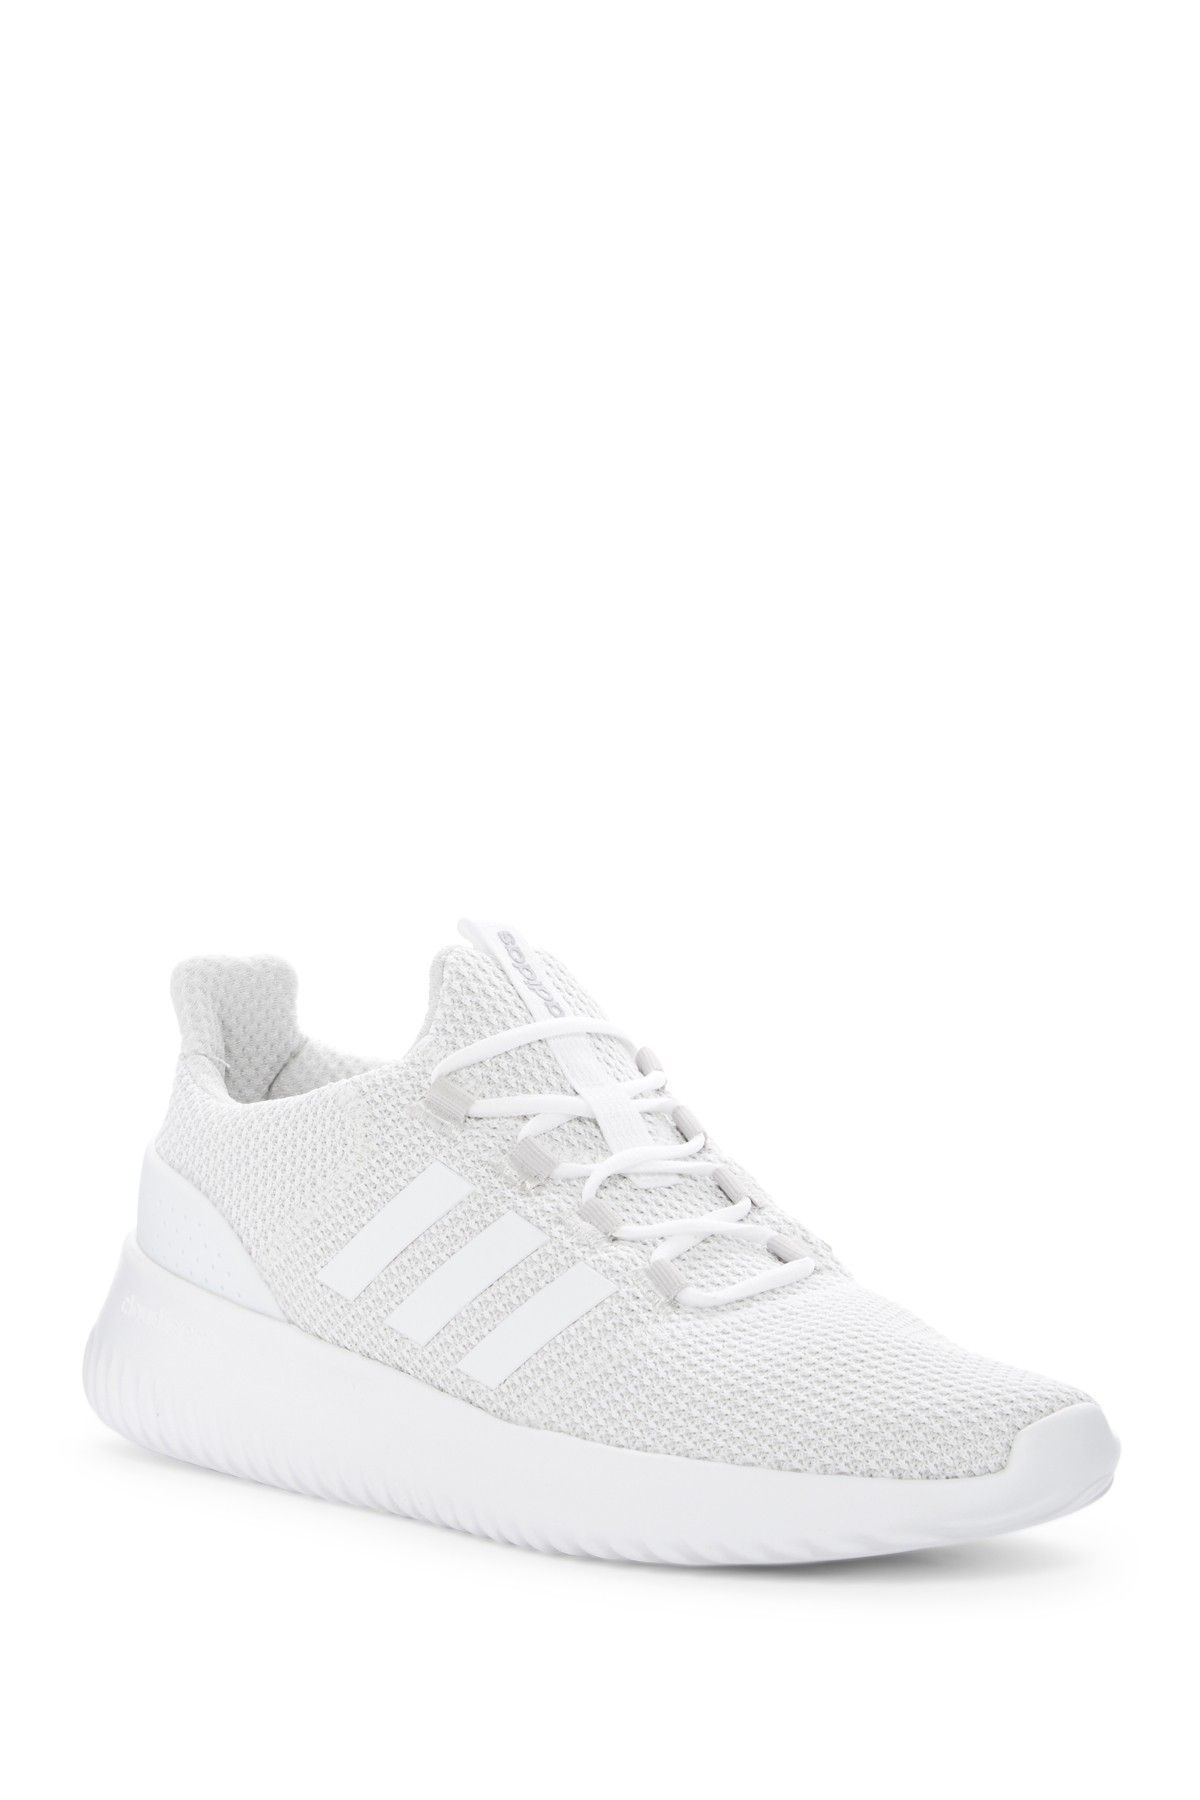 09e65a30163  62 Image of adidas Cloudfoam Ultimate Athletic Sneaker